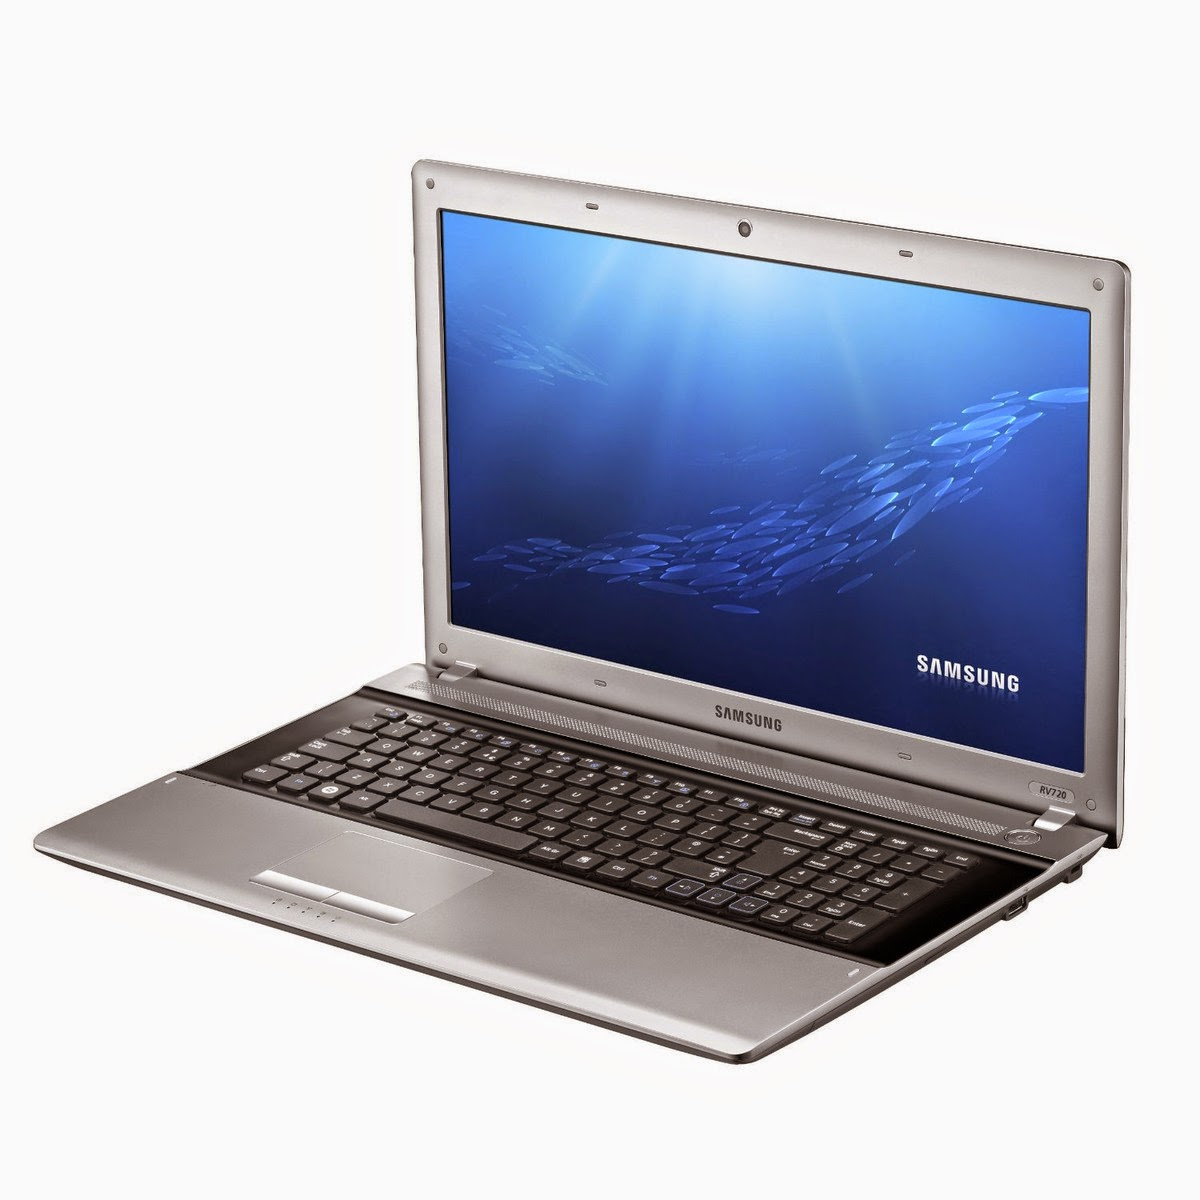 Samsung RV720 Driver Download For Windows 7 / Windows 8 and Windows 8.1 32 bit And 64 bit